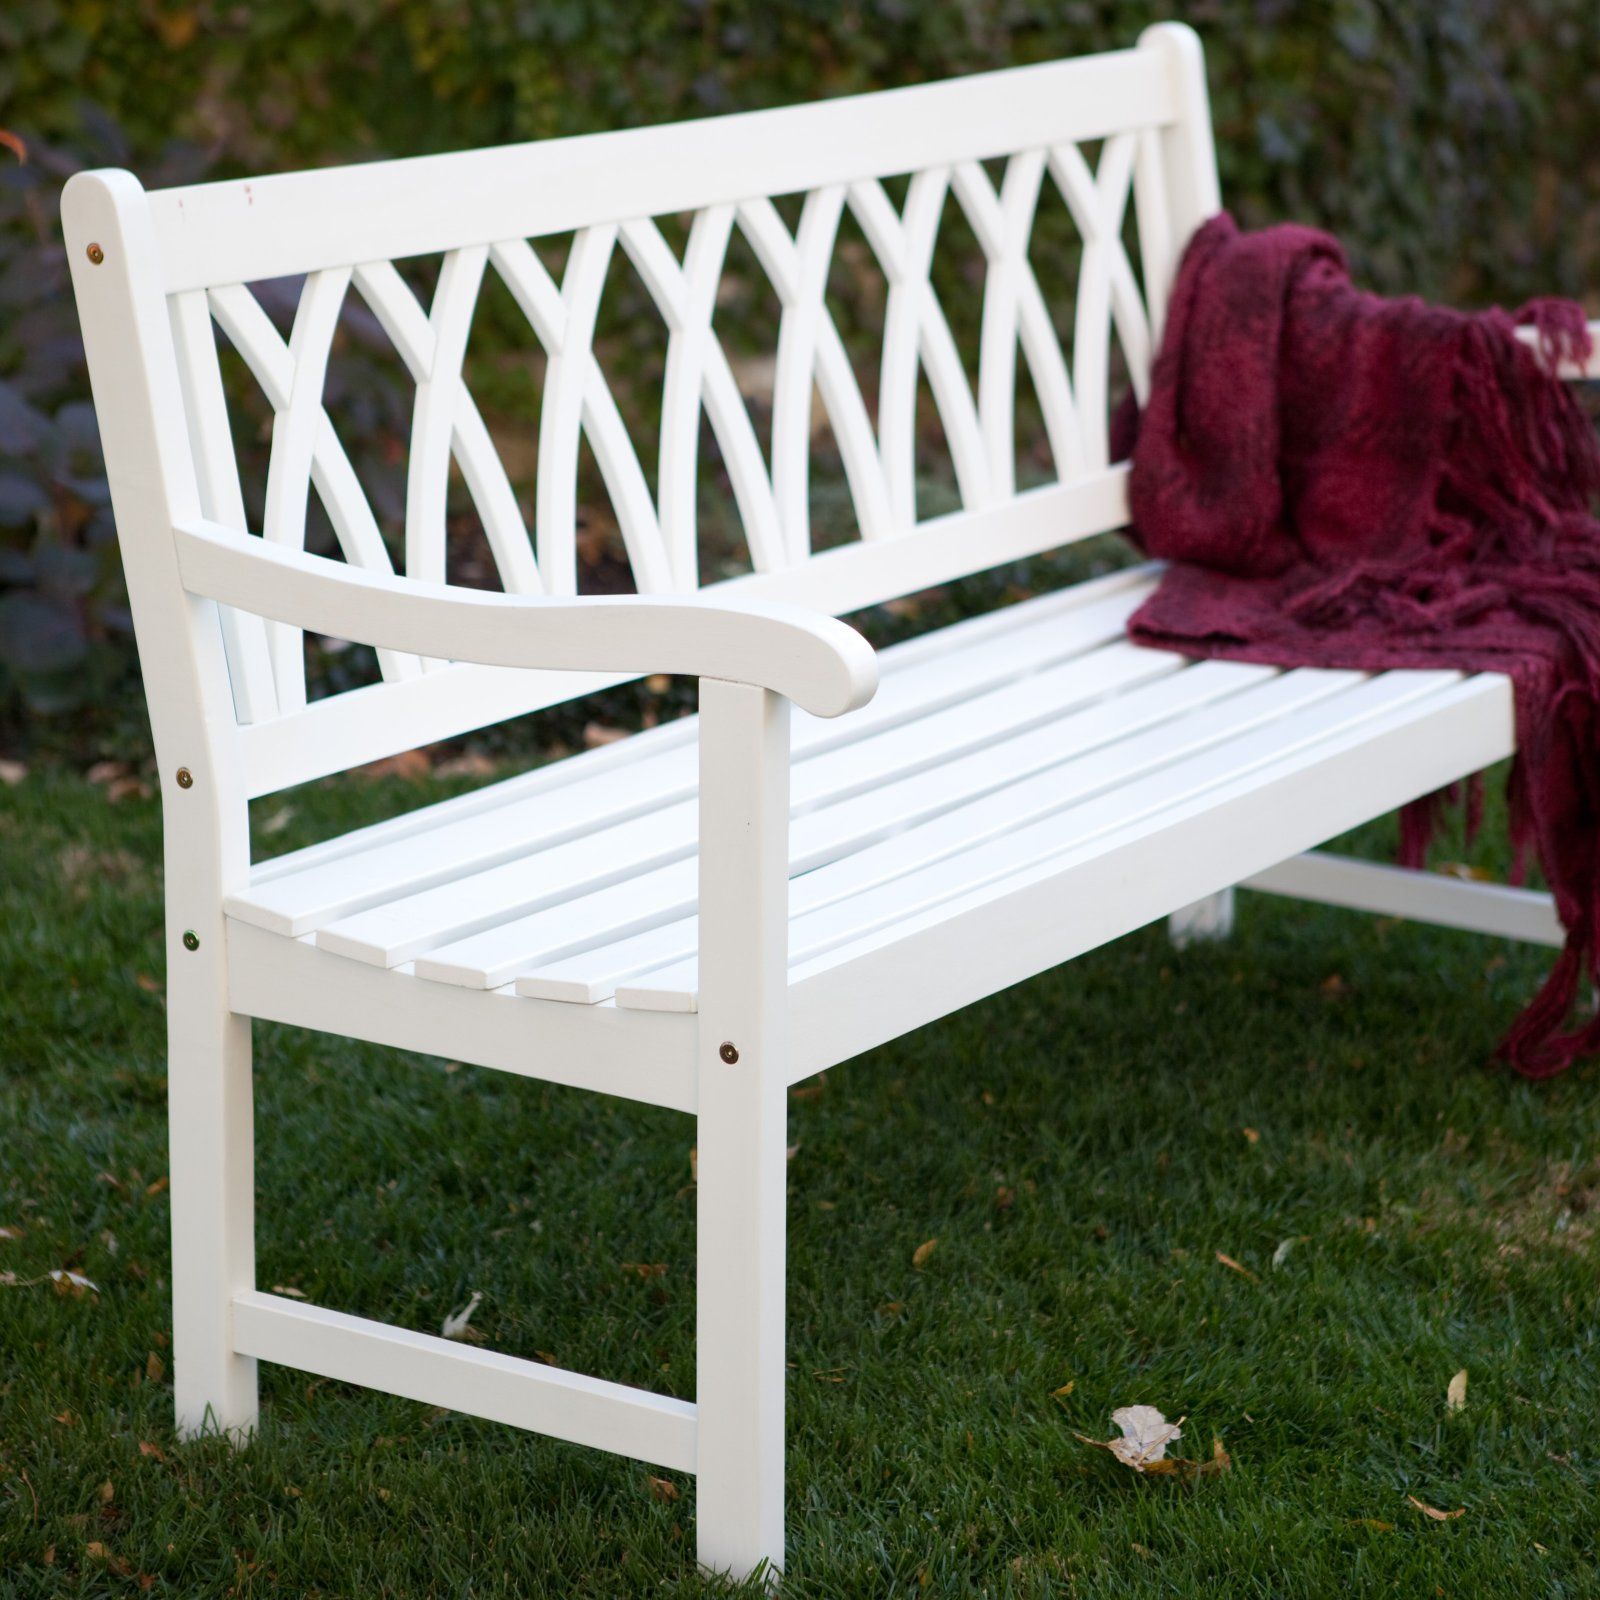 cunningham 5-ft. painted wood garden bench - white | new house